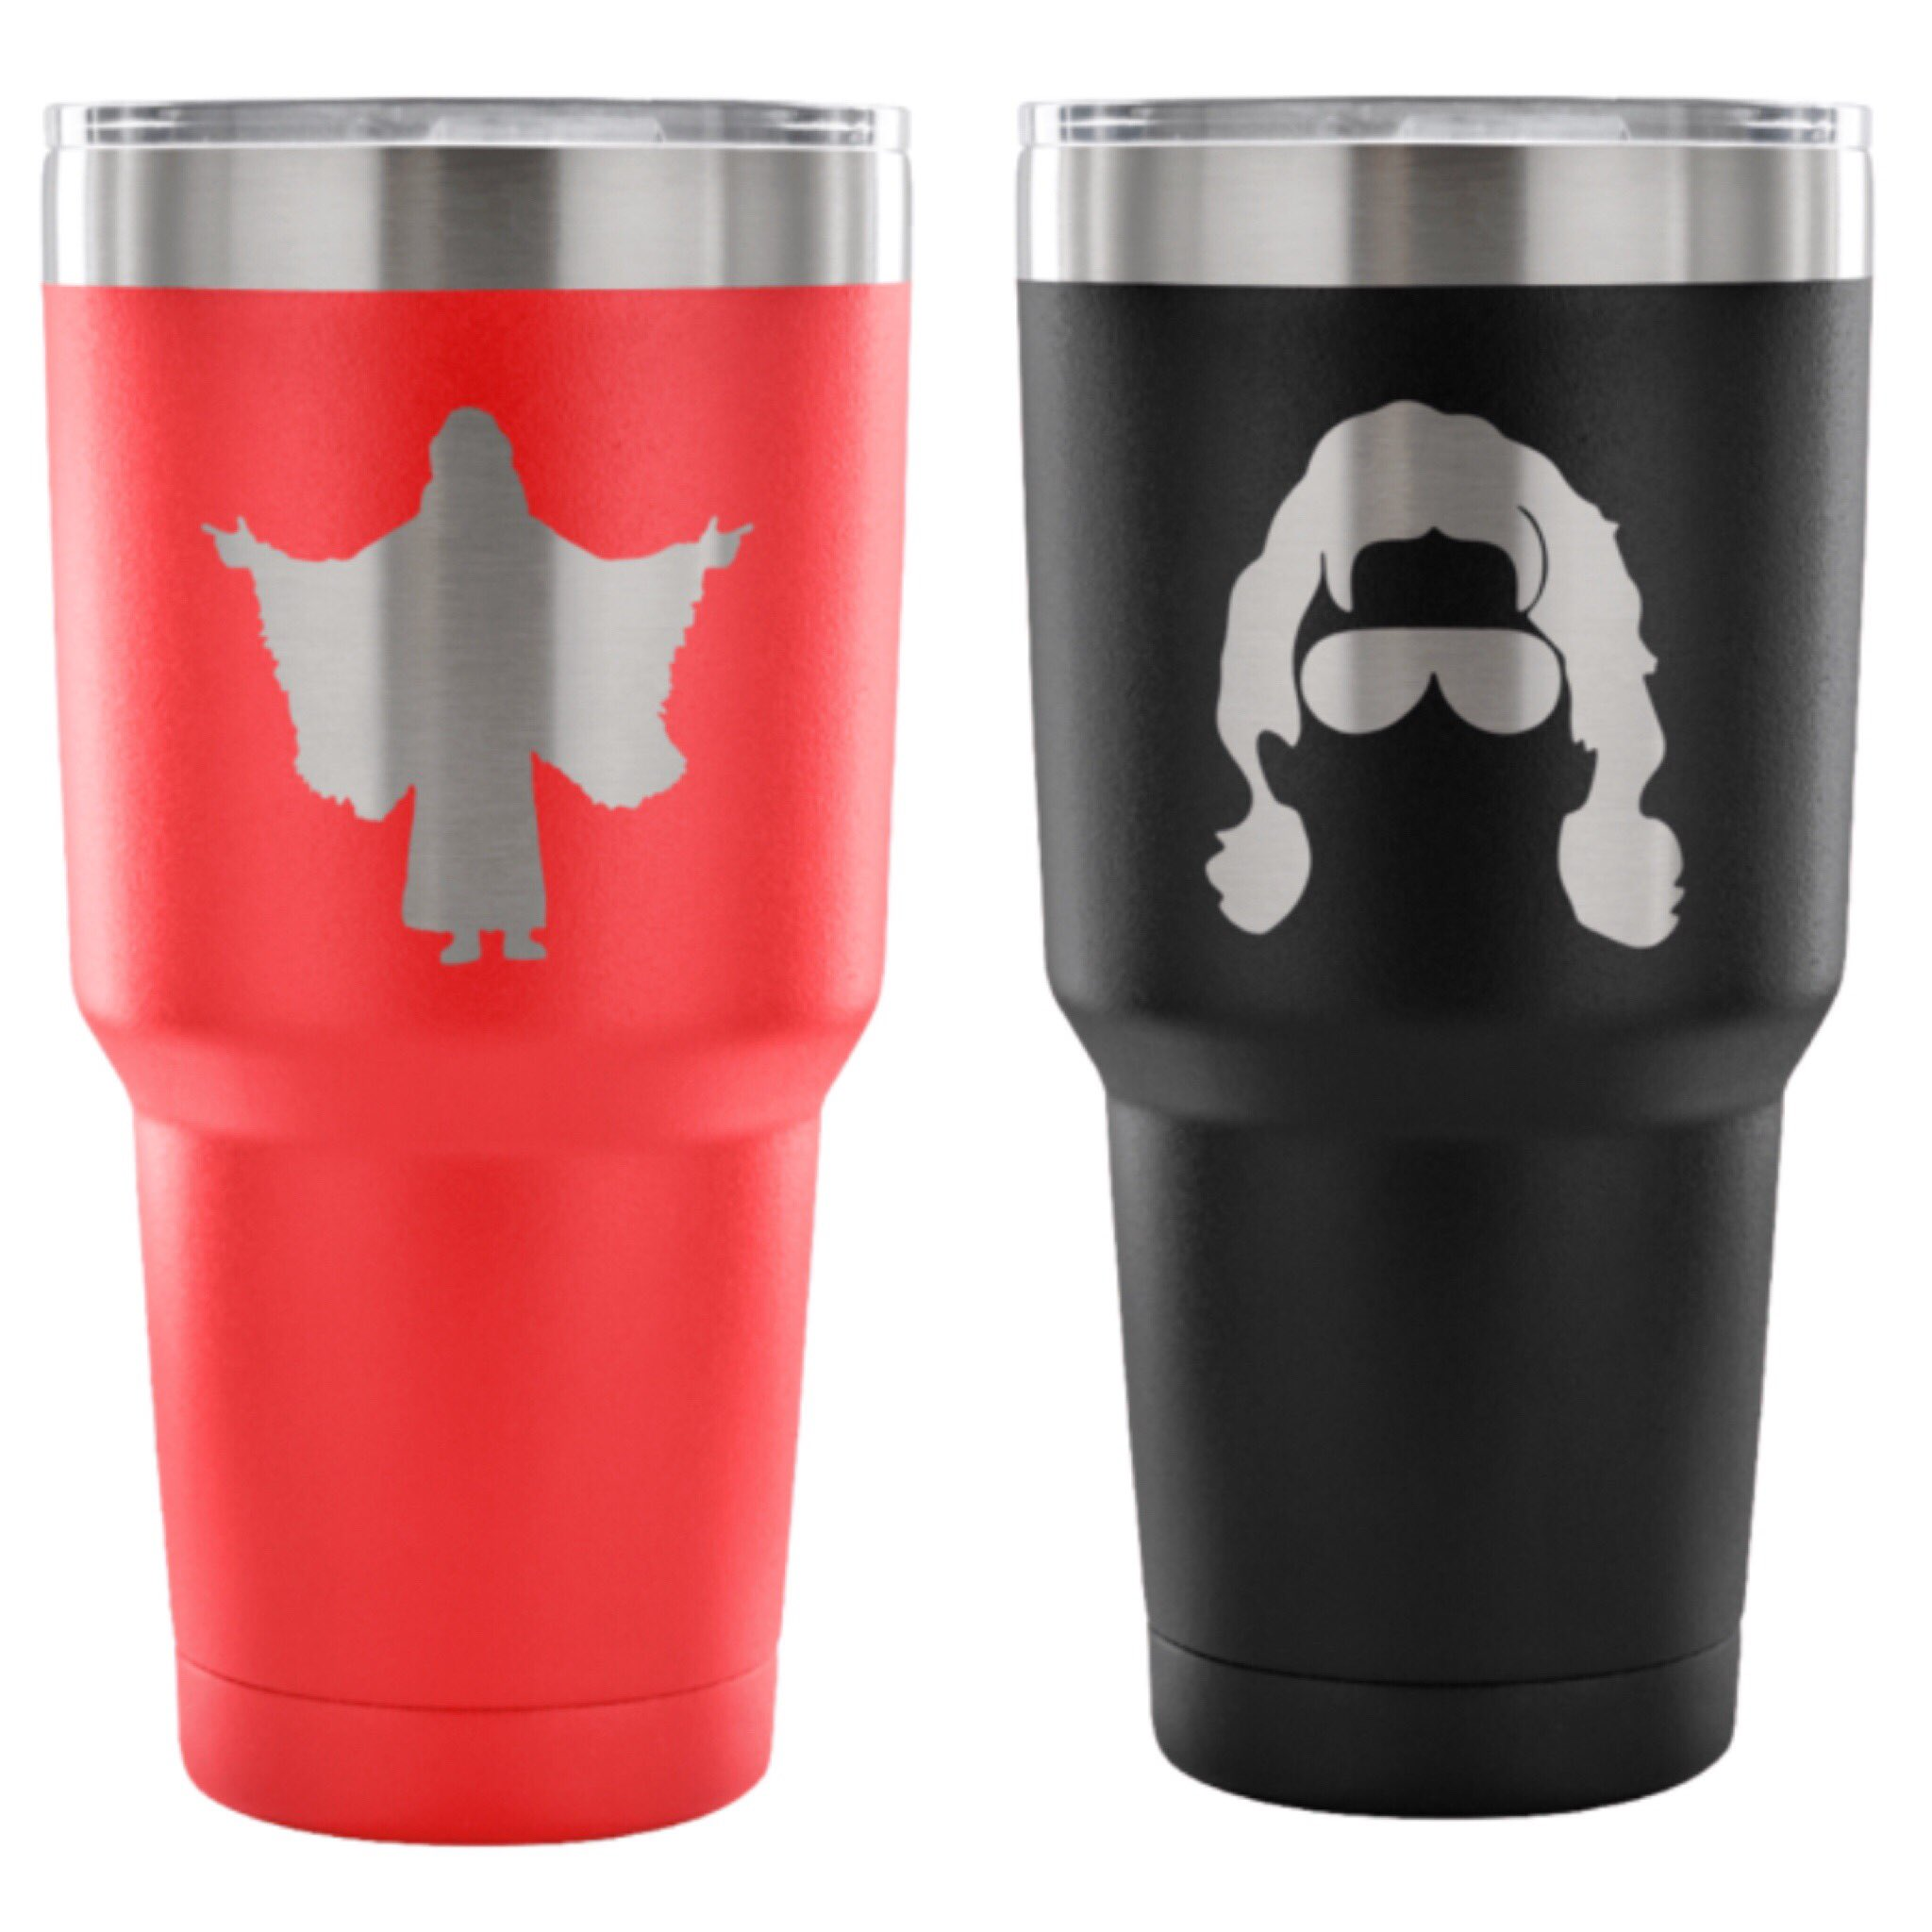 New Product Alert! Be One Of The First To Get A Nature Boy Tumbler! Check Them Out At https://t.co/1ZgKVjFH8x ! https://t.co/HCk4i2iwIJ